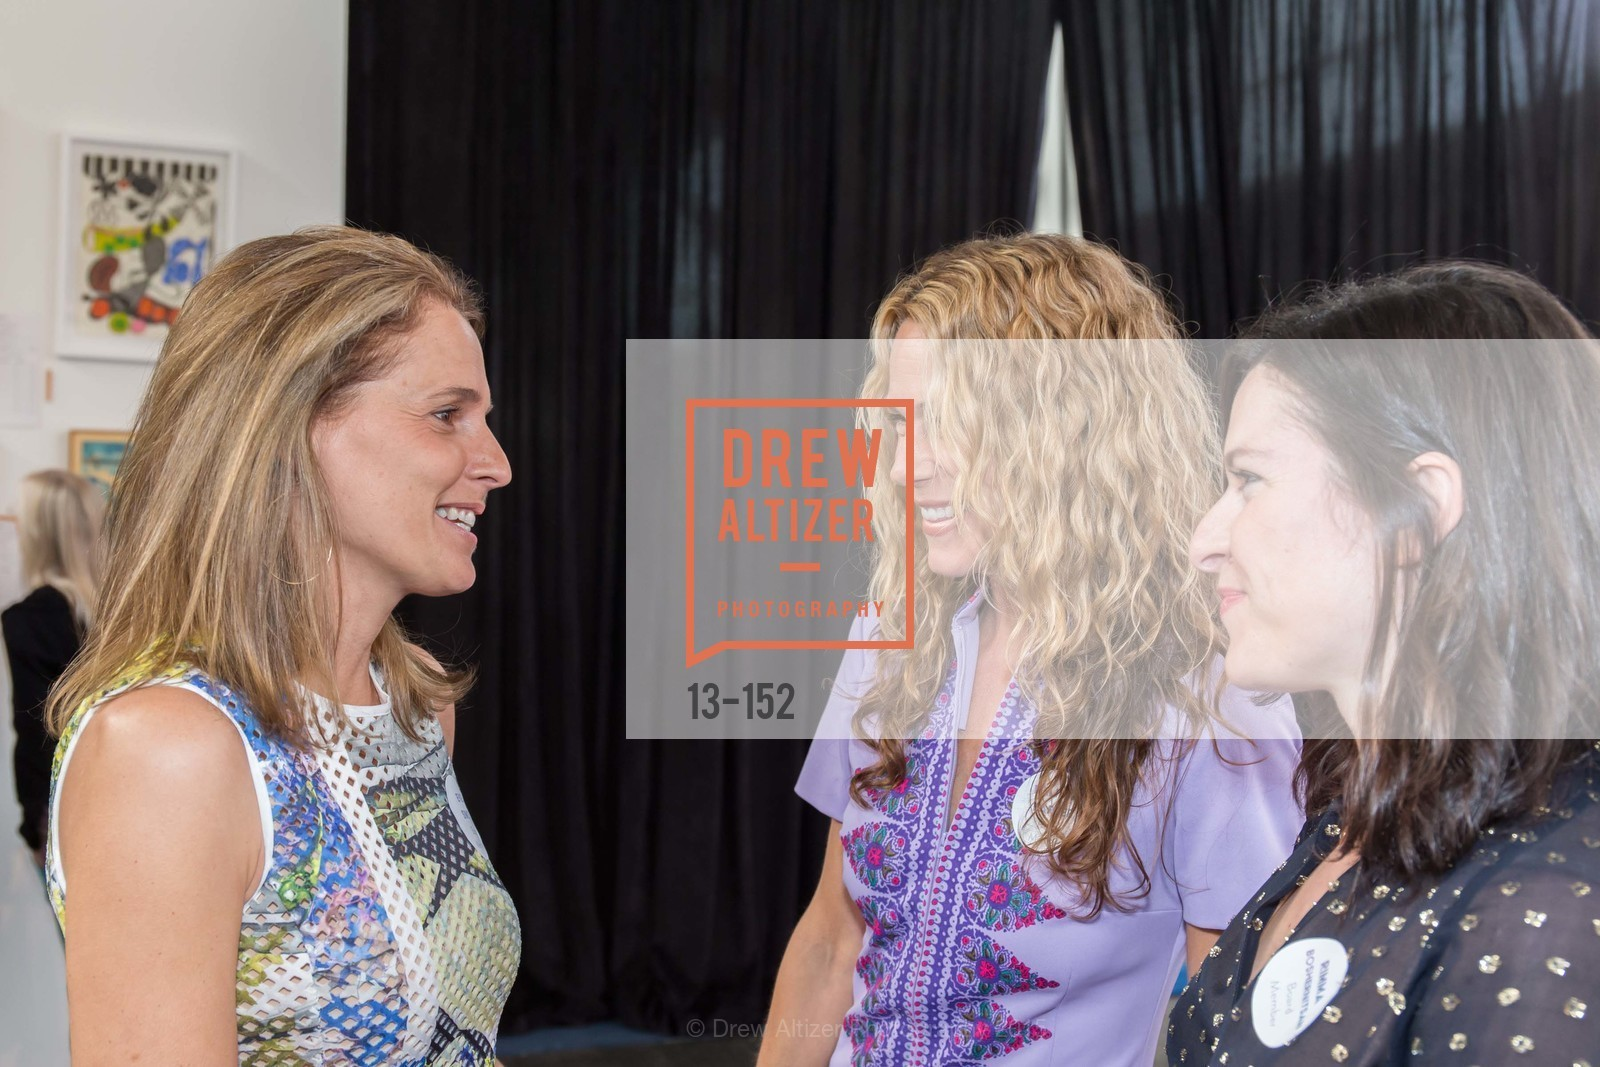 Evie Simon, Melissa Barber, Rimma Boshernitsan, Headlands Center for the Arts Benefit Auction, Fort Mason Festival, Pavilon, June 2nd, 2015,Drew Altizer, Drew Altizer Photography, full-service agency, private events, San Francisco photographer, photographer california